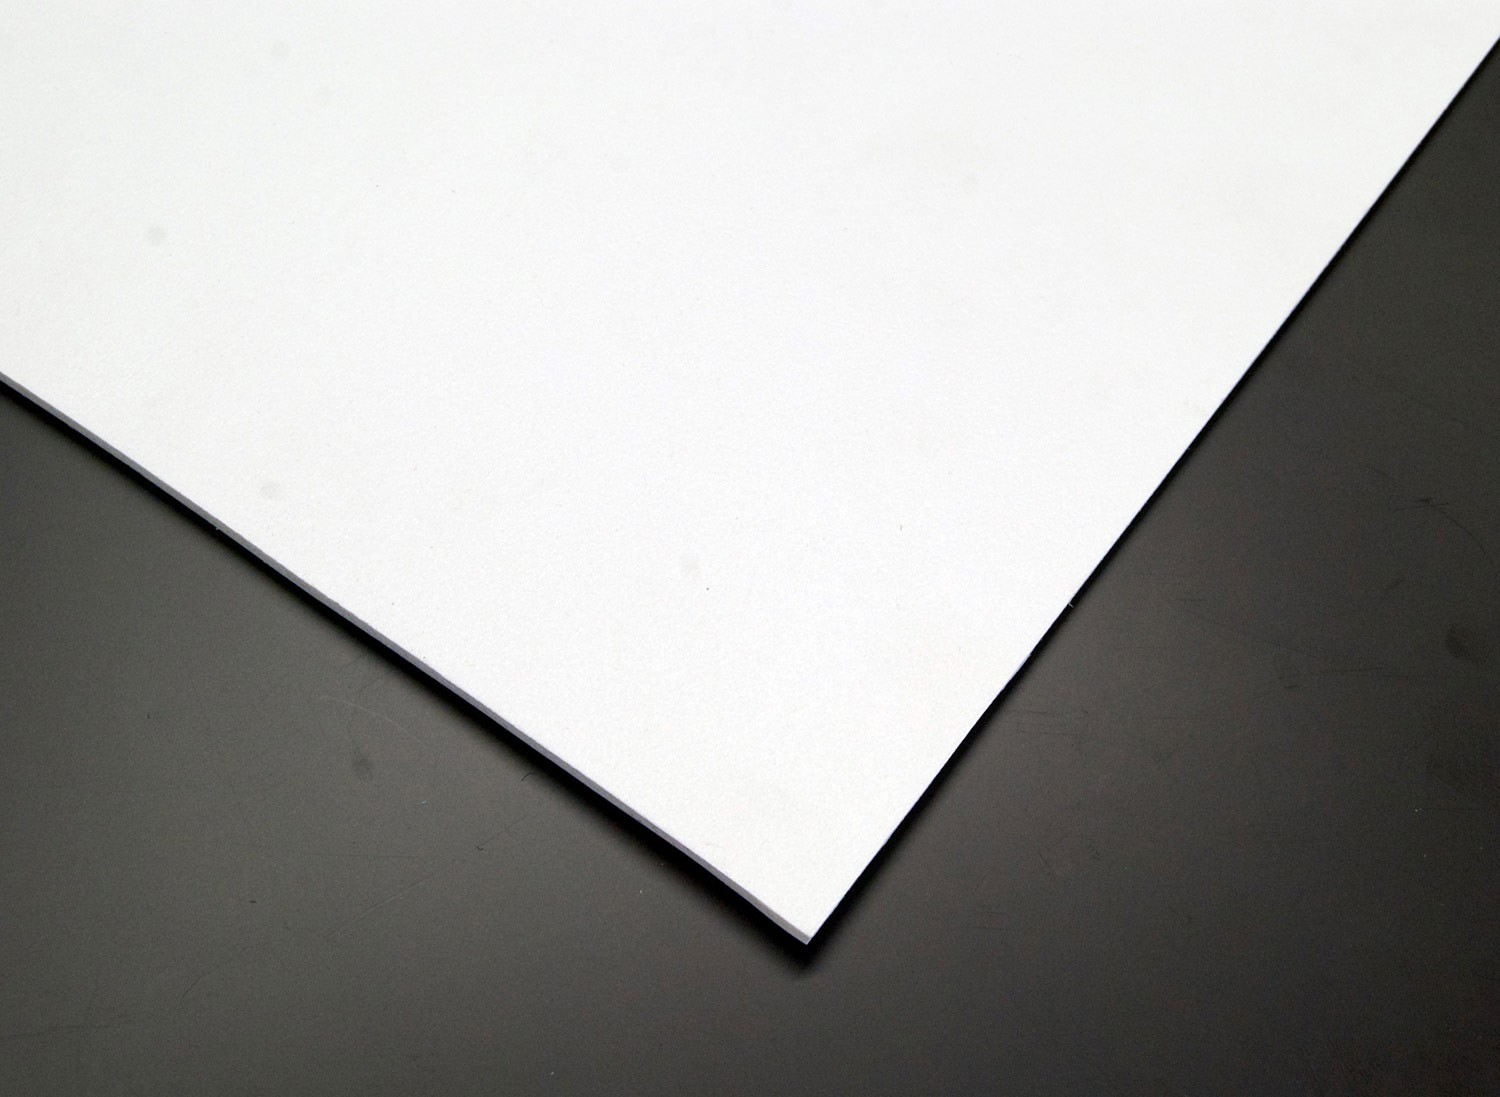 5mm Foamex PVC 2030 x 1520mm (White)